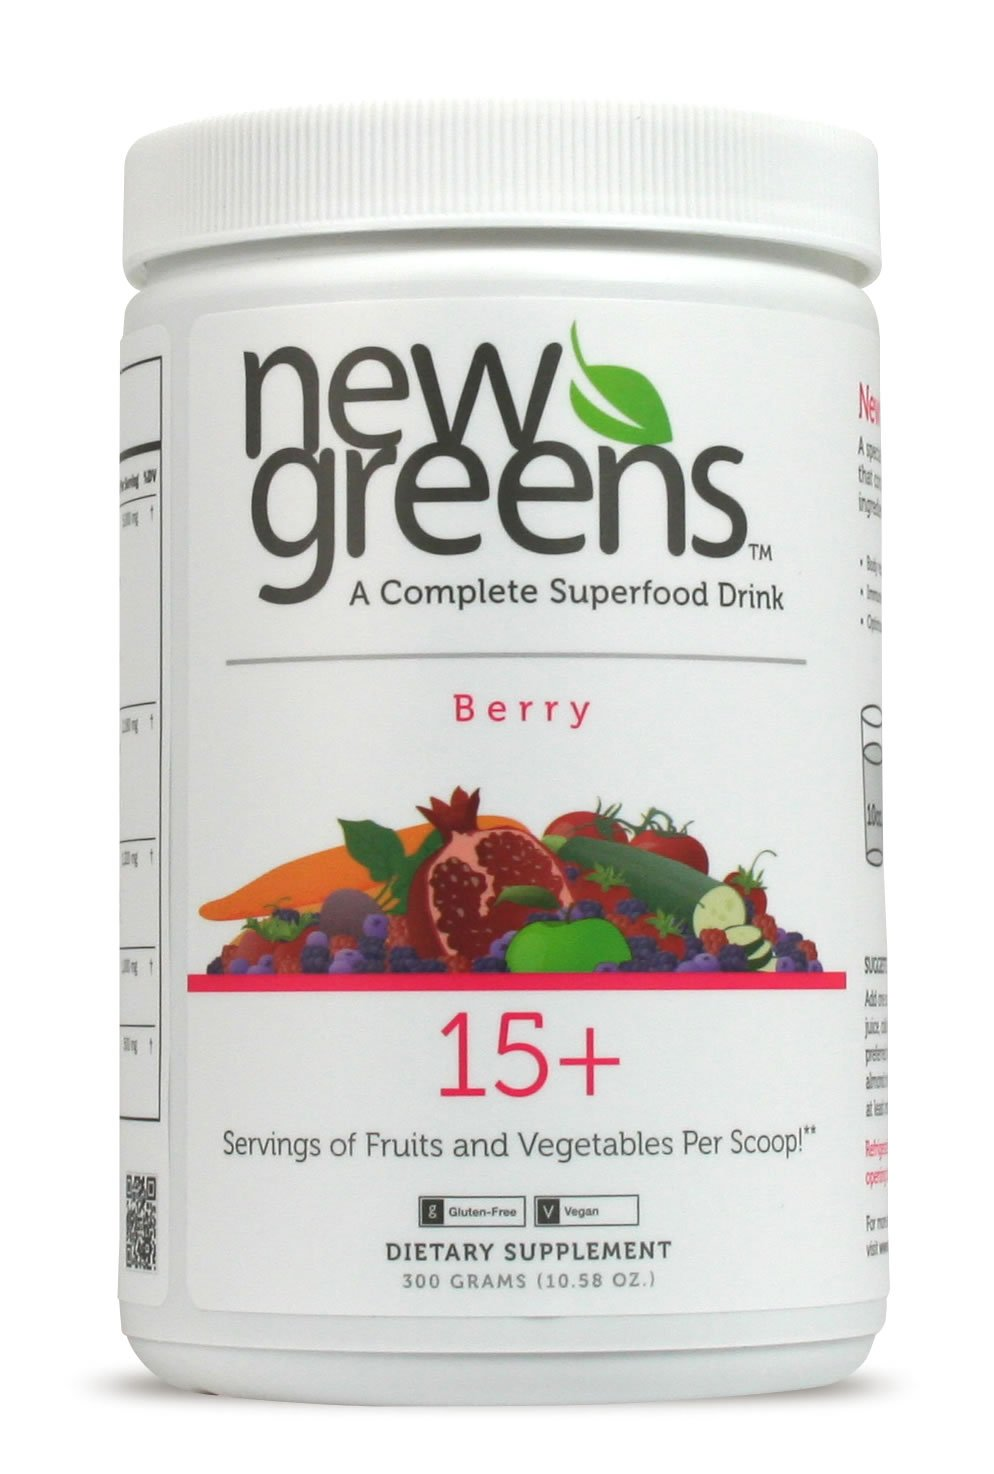 New Greens   Green Superfood Powder   54 Active Antioxidant Ingredients   Juice & Smoothie Drink with Herbal, Enzyme & Fiber Blends   Berry Flavor   Non-GMO, Vegan & Gluten Free.